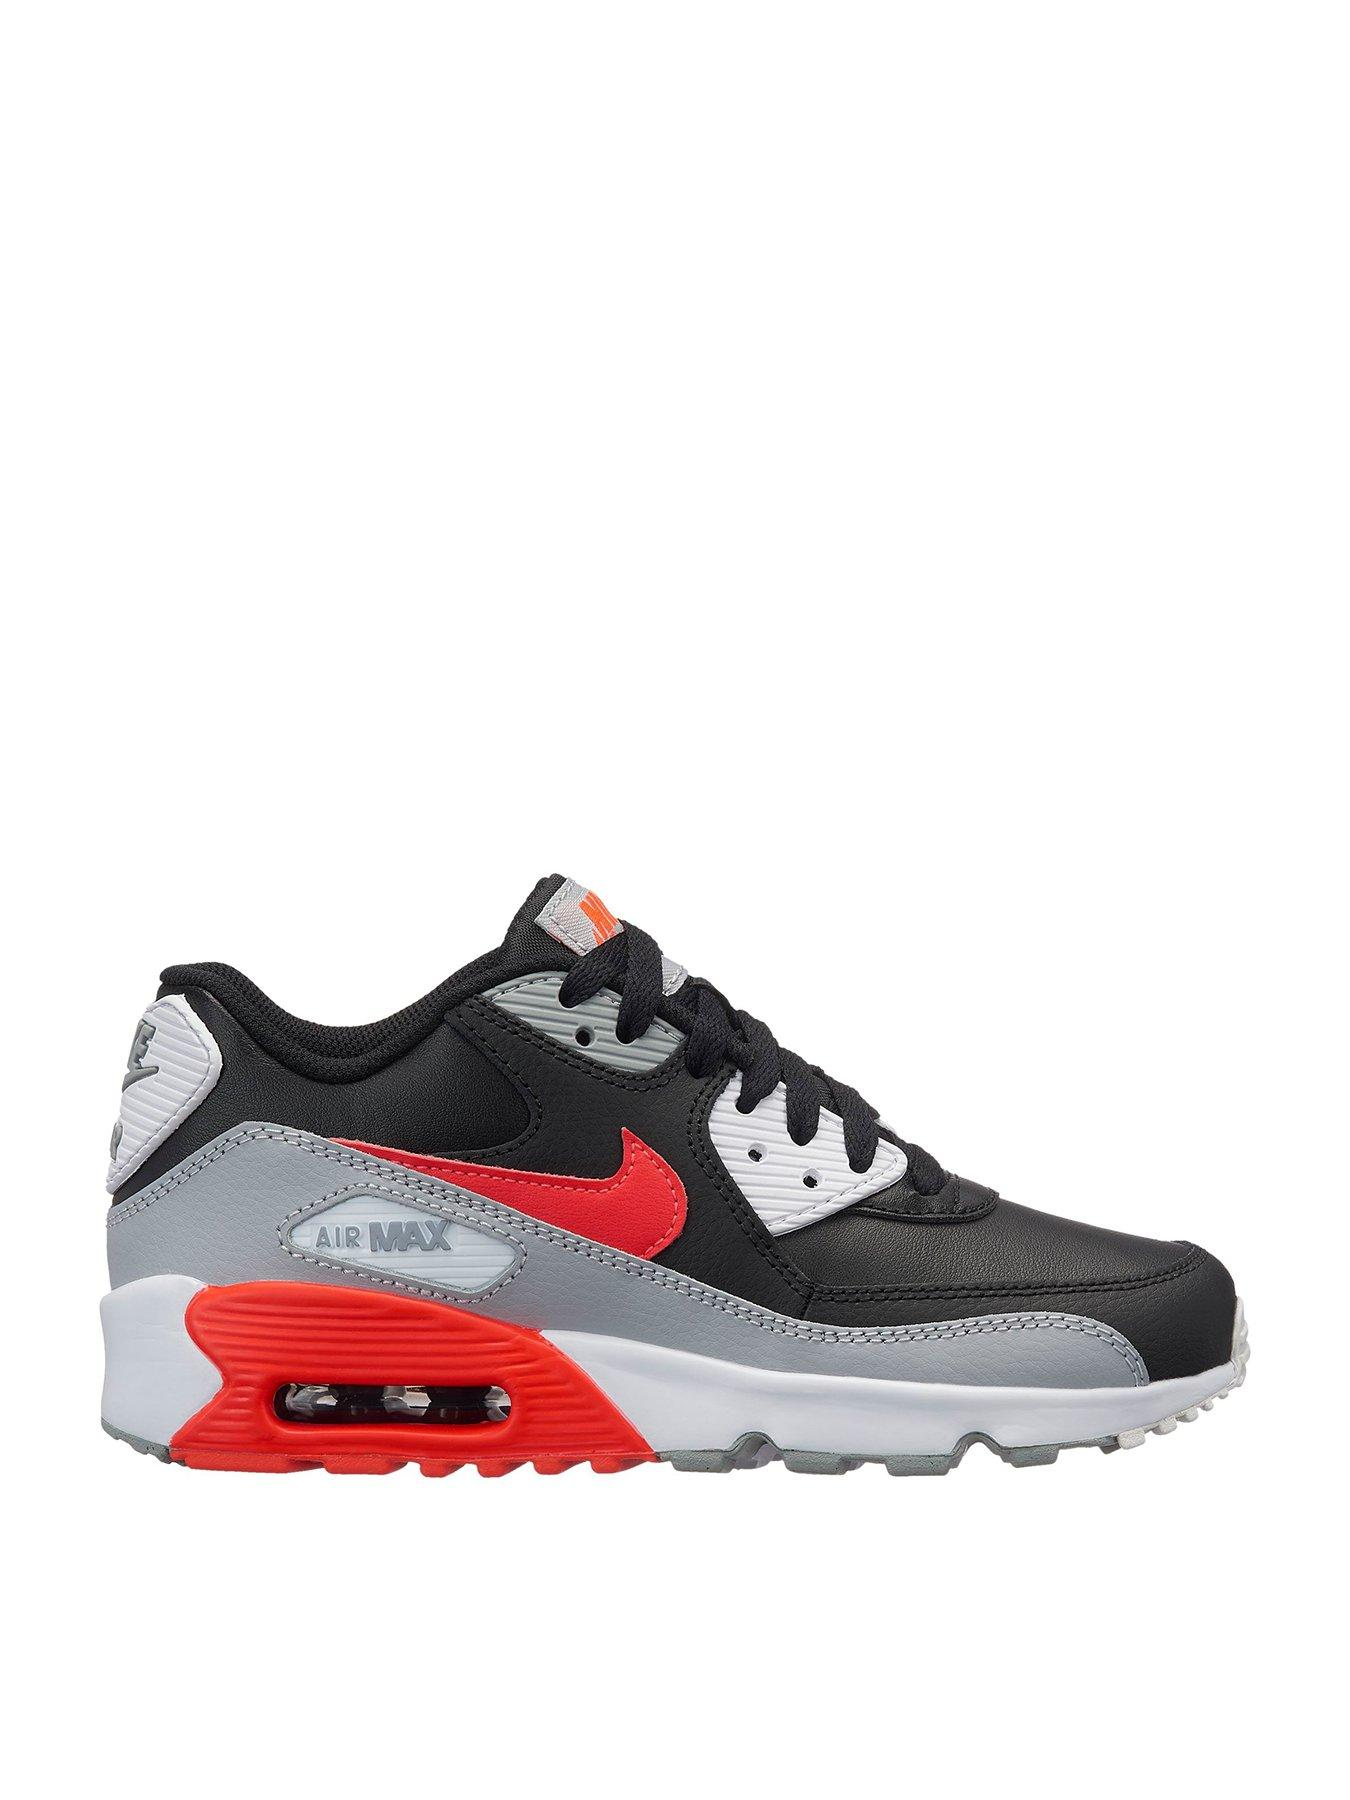 babies nike air max trainers